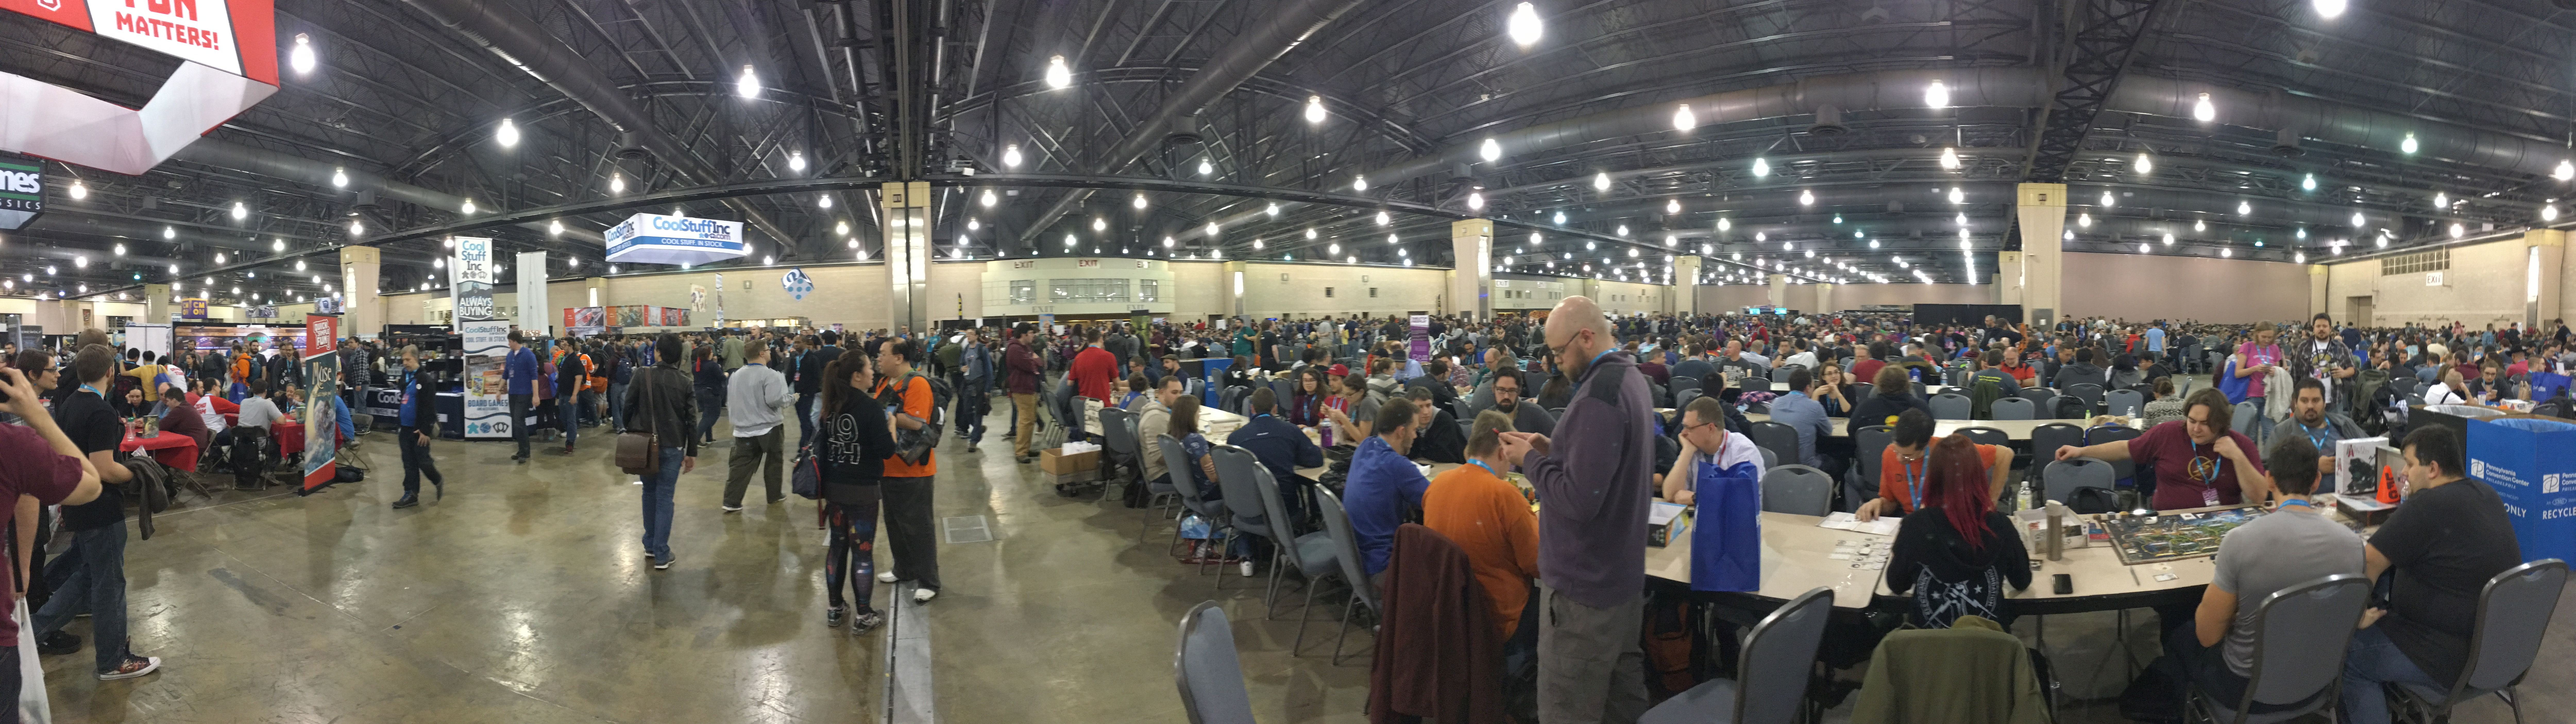 Crowded PAX Exhibit Hall and Gaming Area